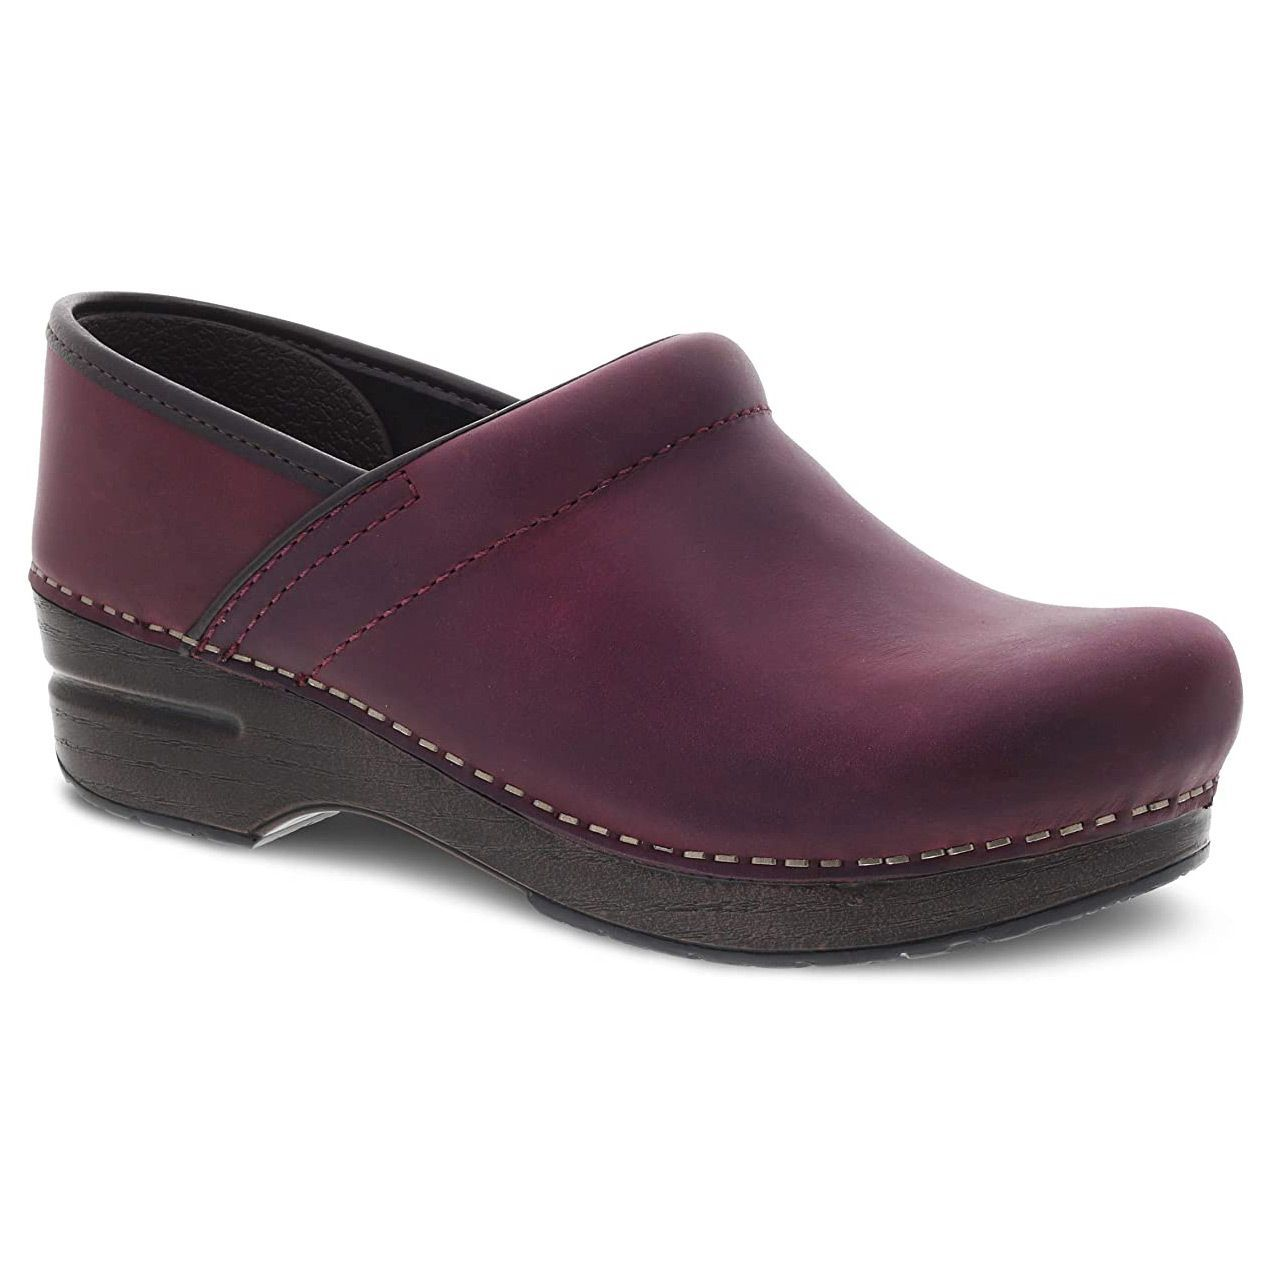 22 Most Comfortable Shoes for Women